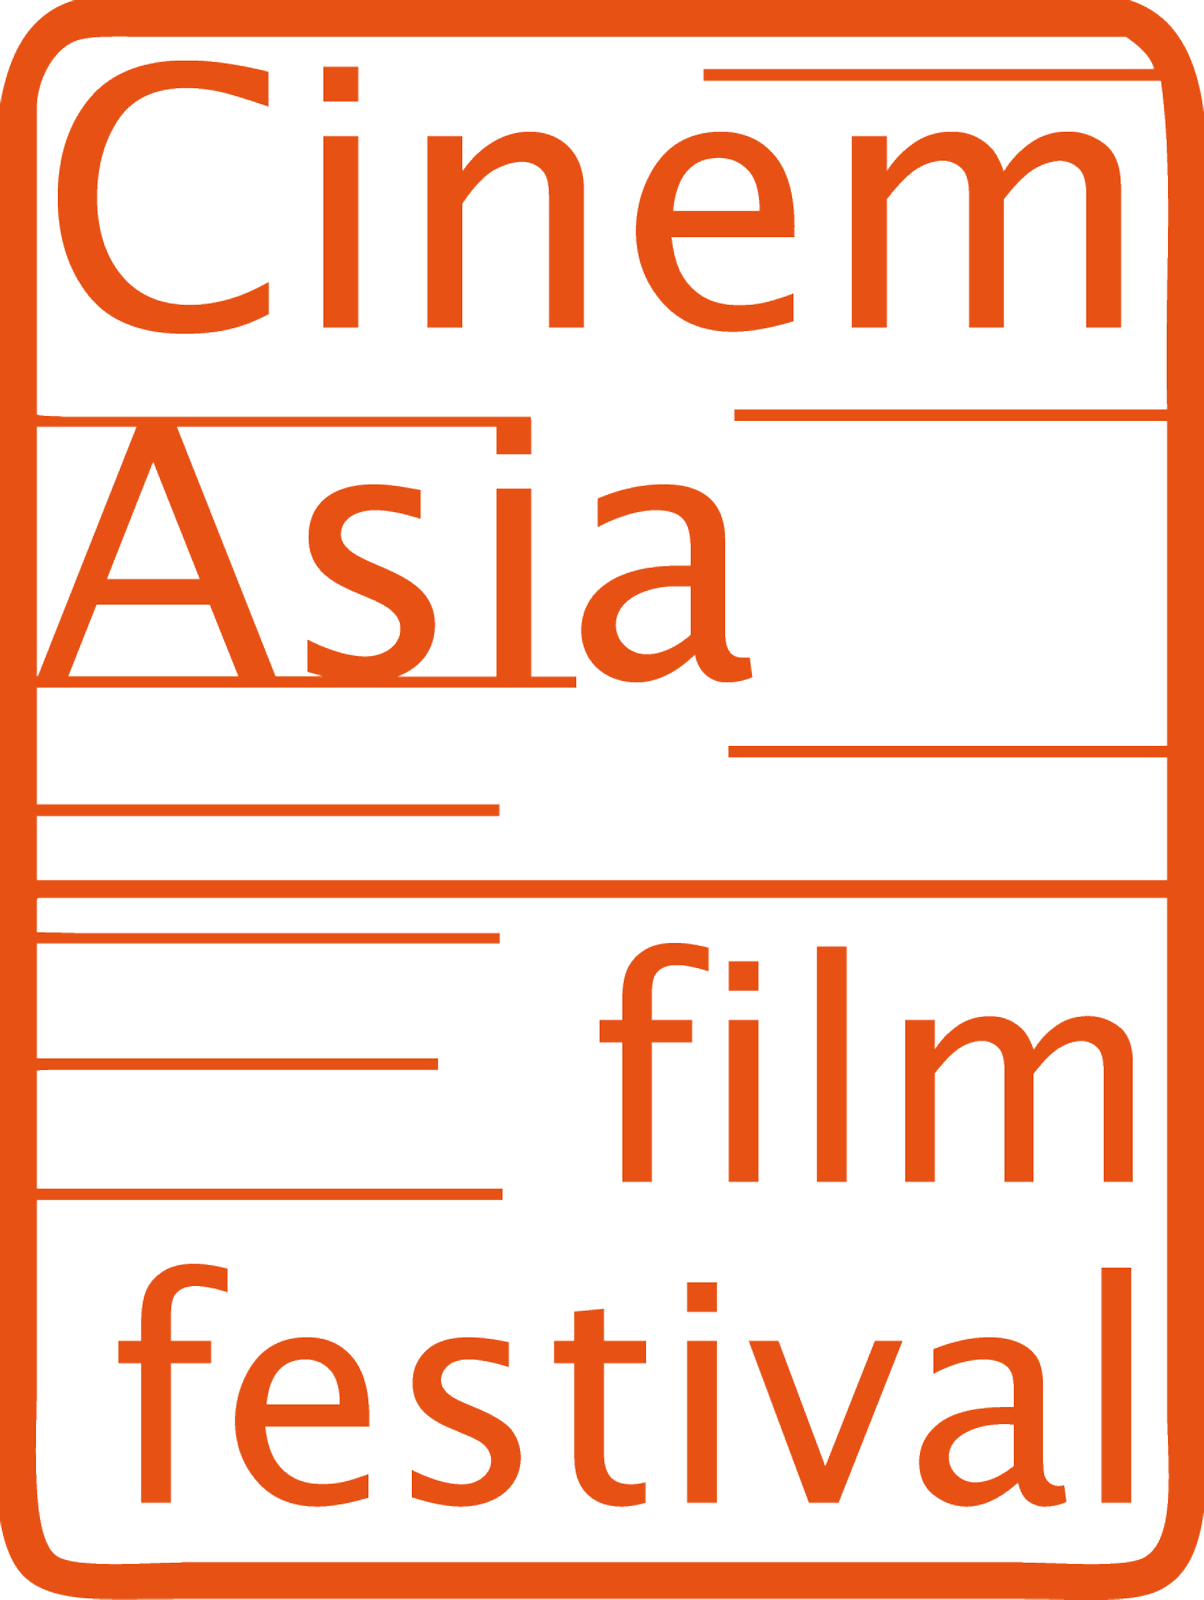 CinemAsia Filmfestival, 4-7 april 2013, De Balie Amsterdam